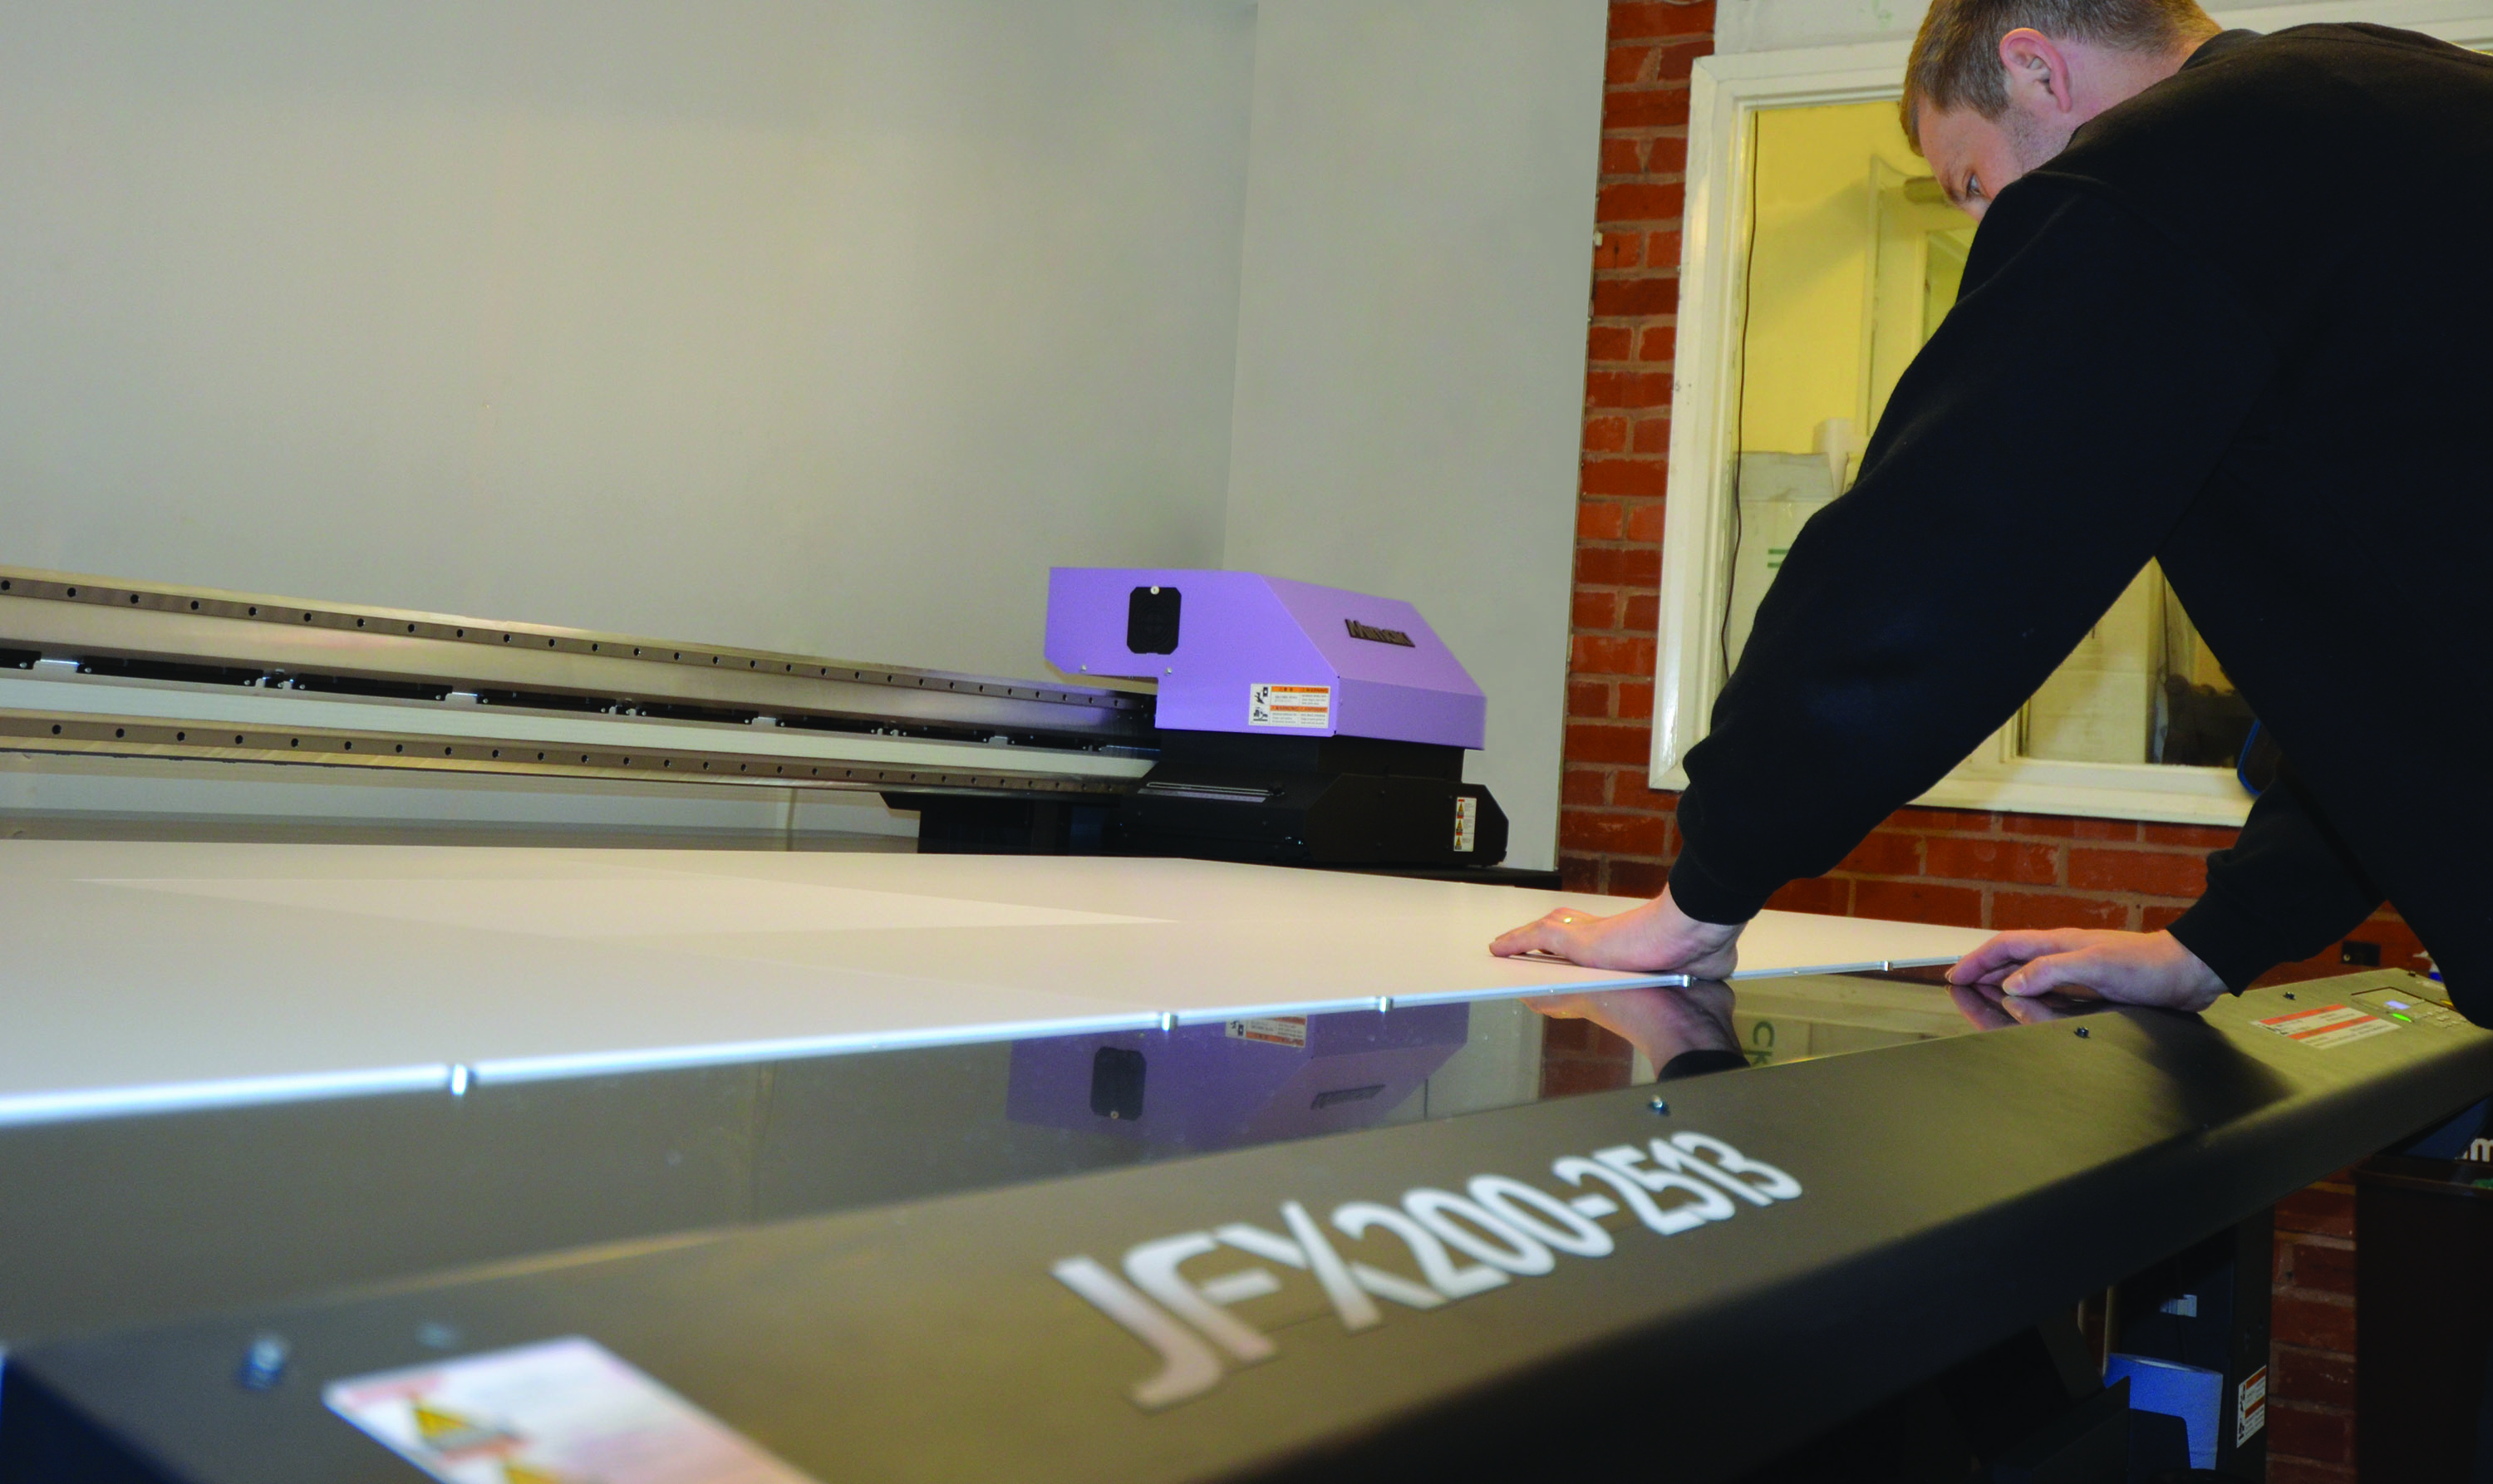 Matt Shaw sets up a new print job on the Mimaki JFX200